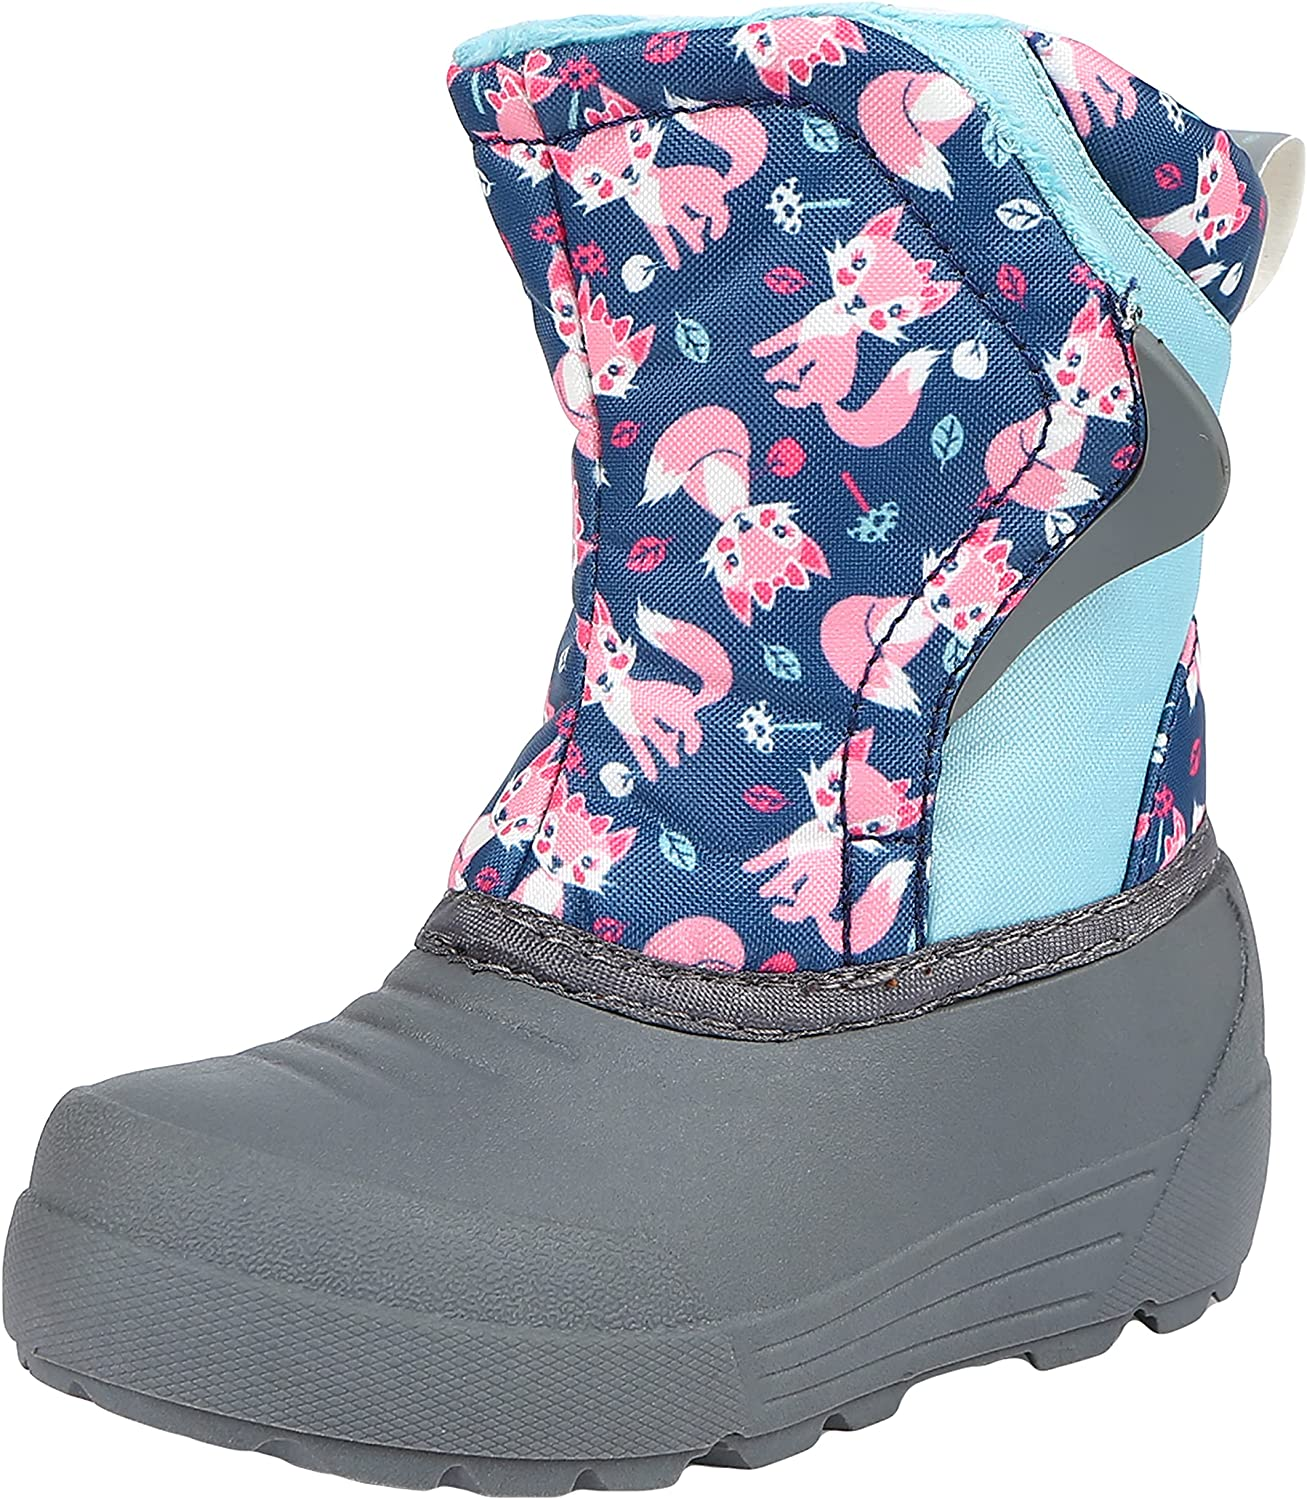 Northside Special sale item Unisex-Child 35% OFF Winter Boot Snow